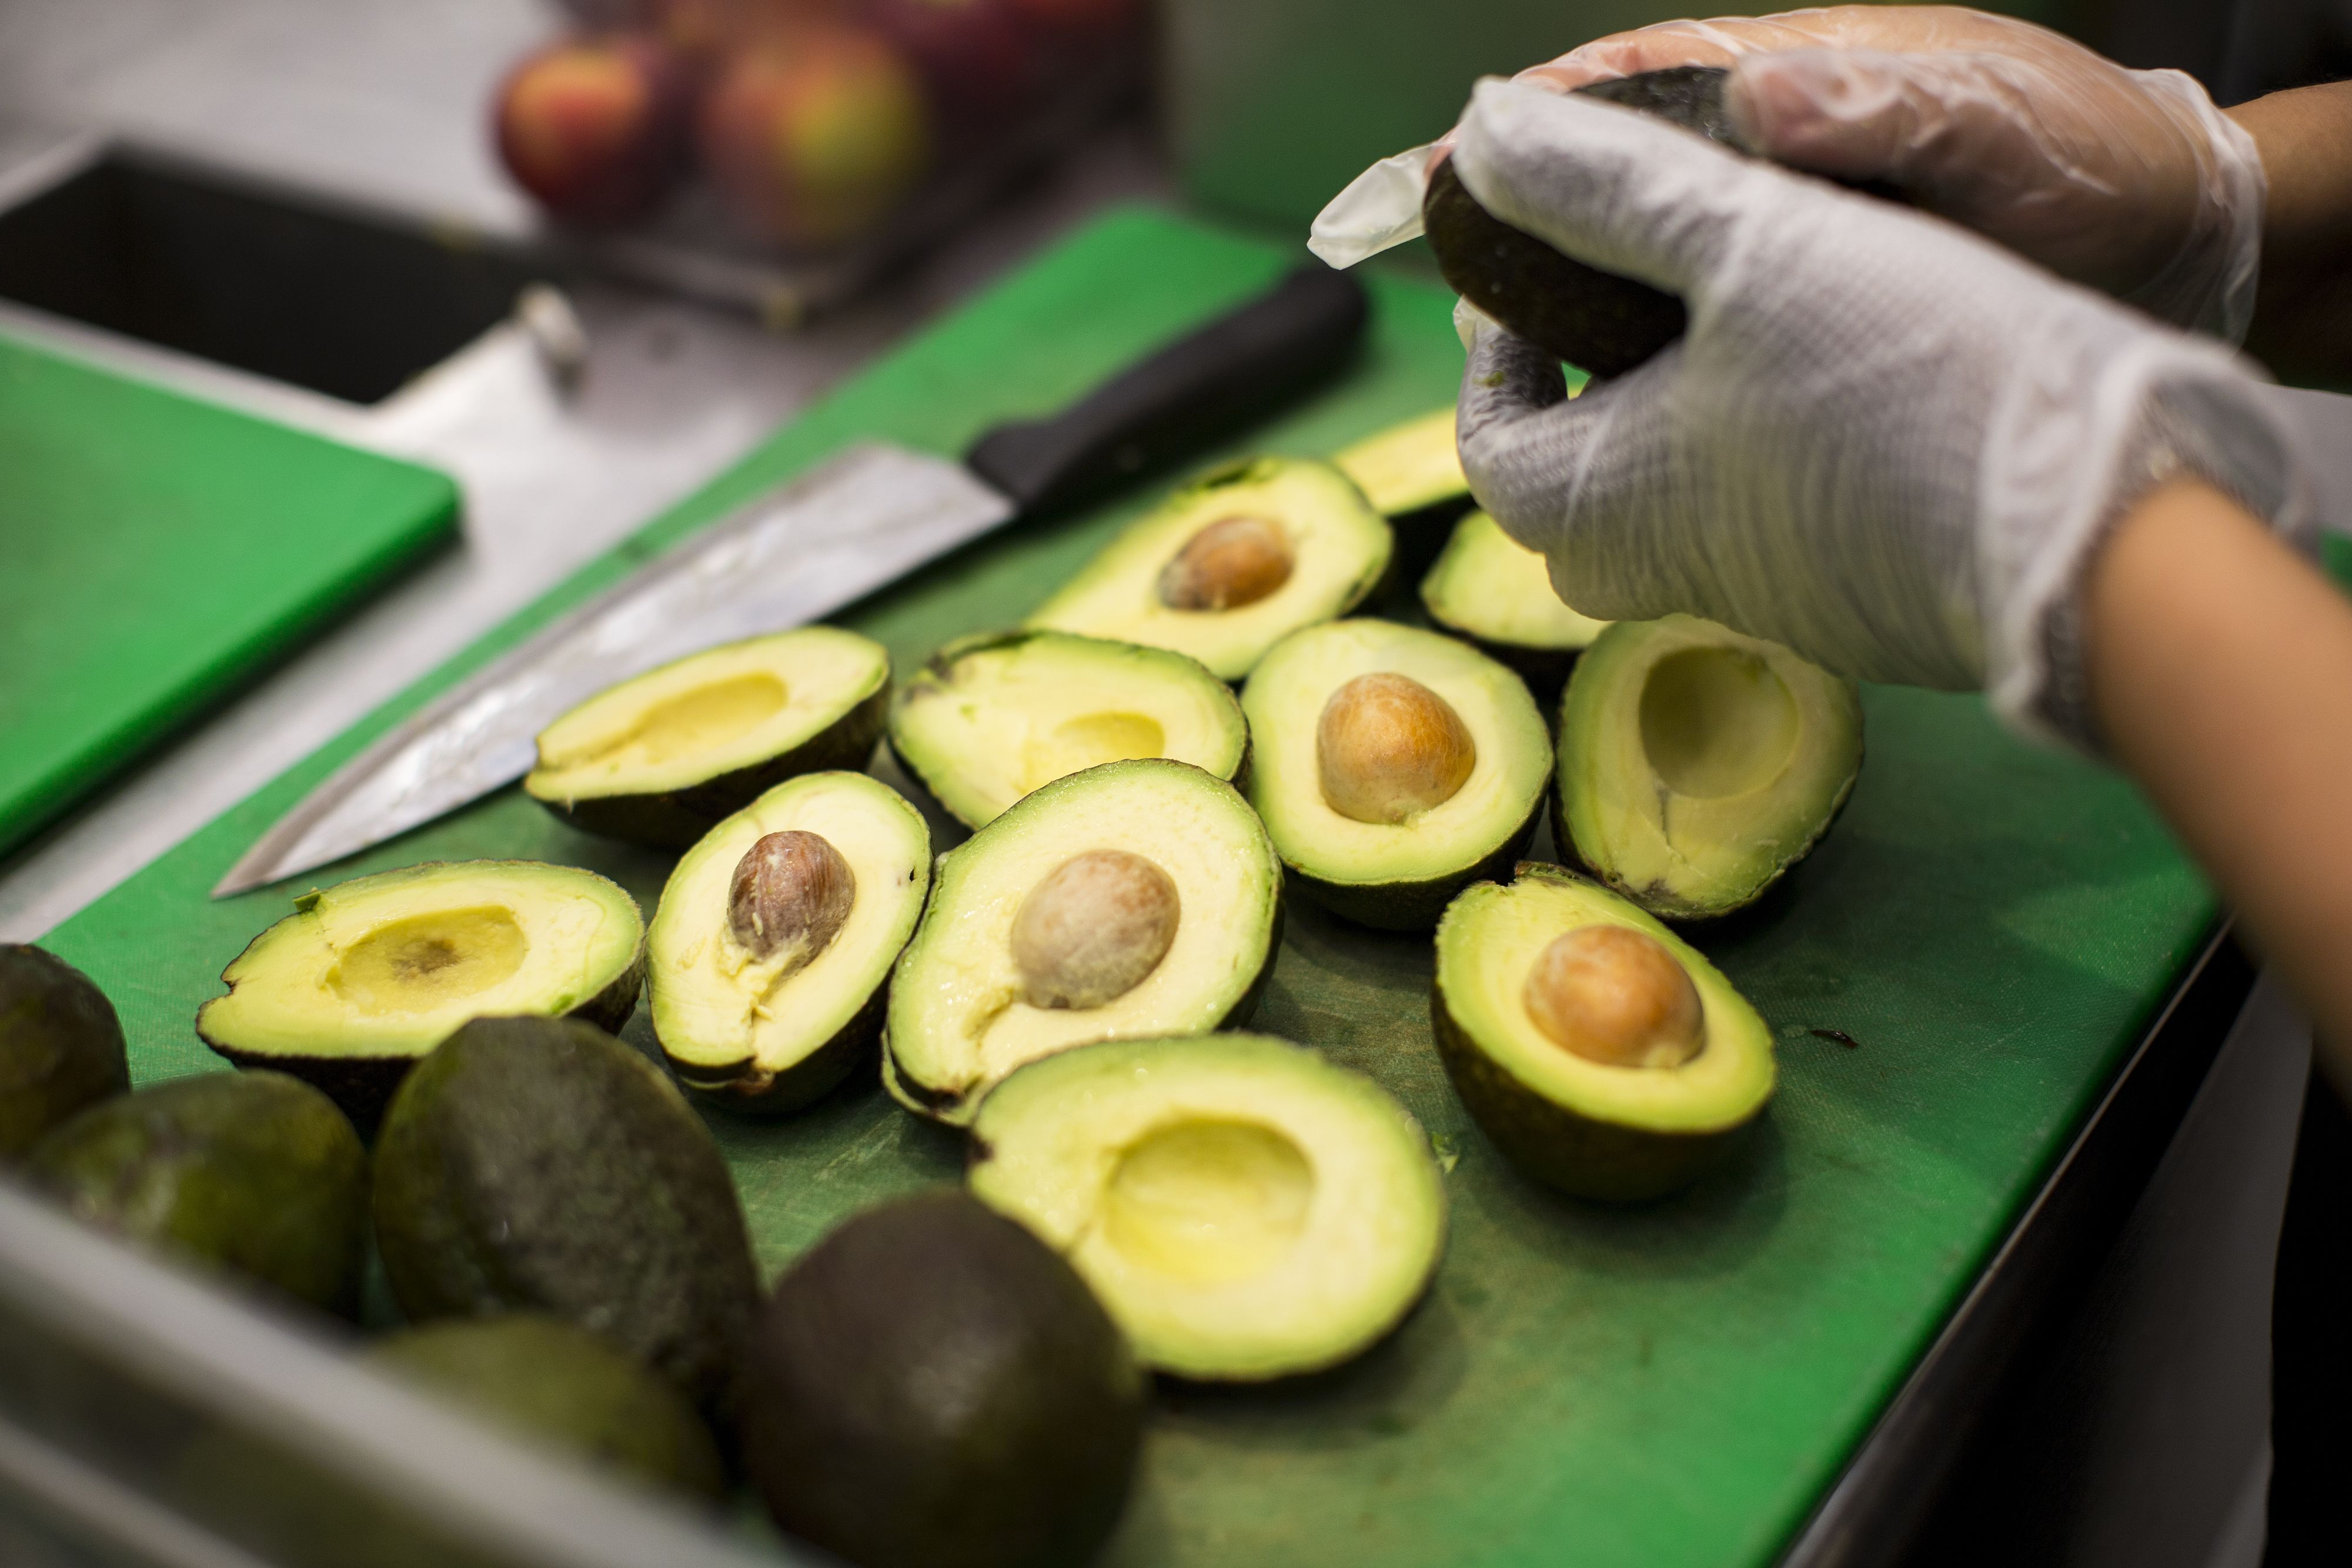 Avocados would likely get more expensive under Trump's Mexico tariffs